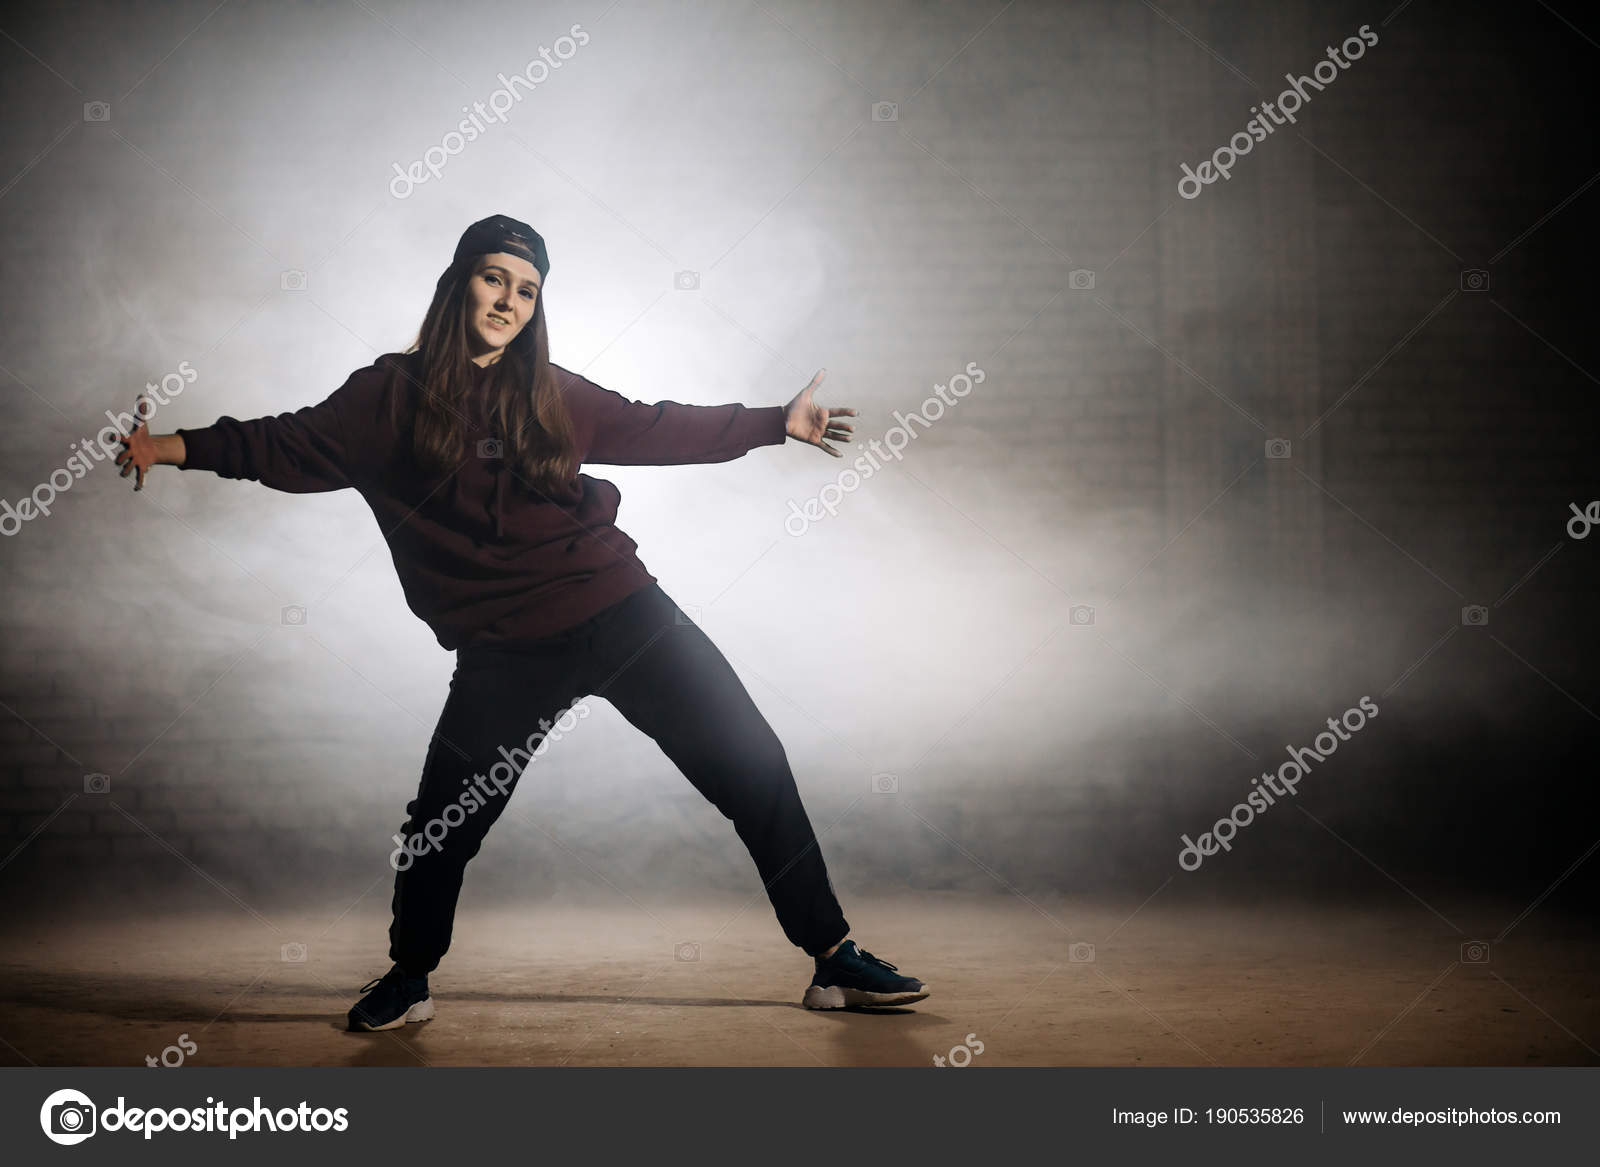 young woman practising movements with legs spread wide and open